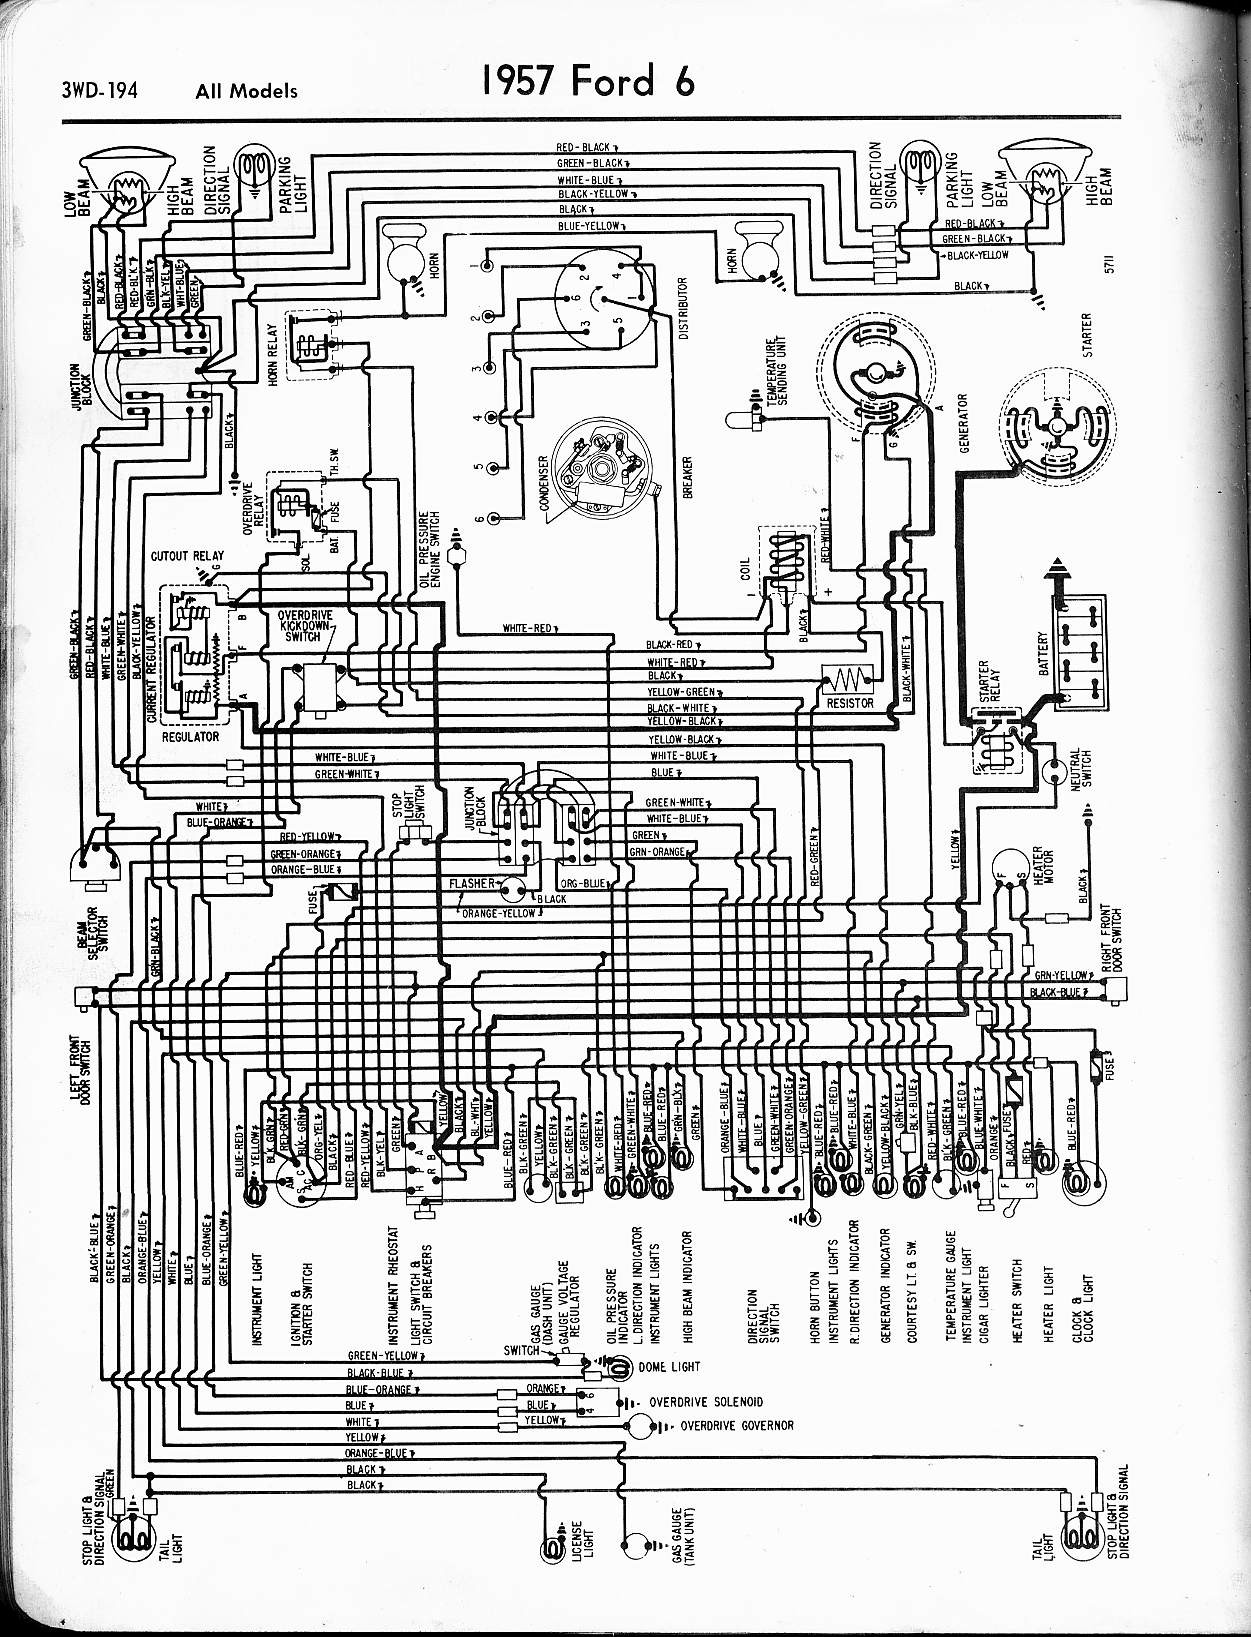 Index of wiring diagrams for 1957 1965 Ford 1957 6 Cyl All Models